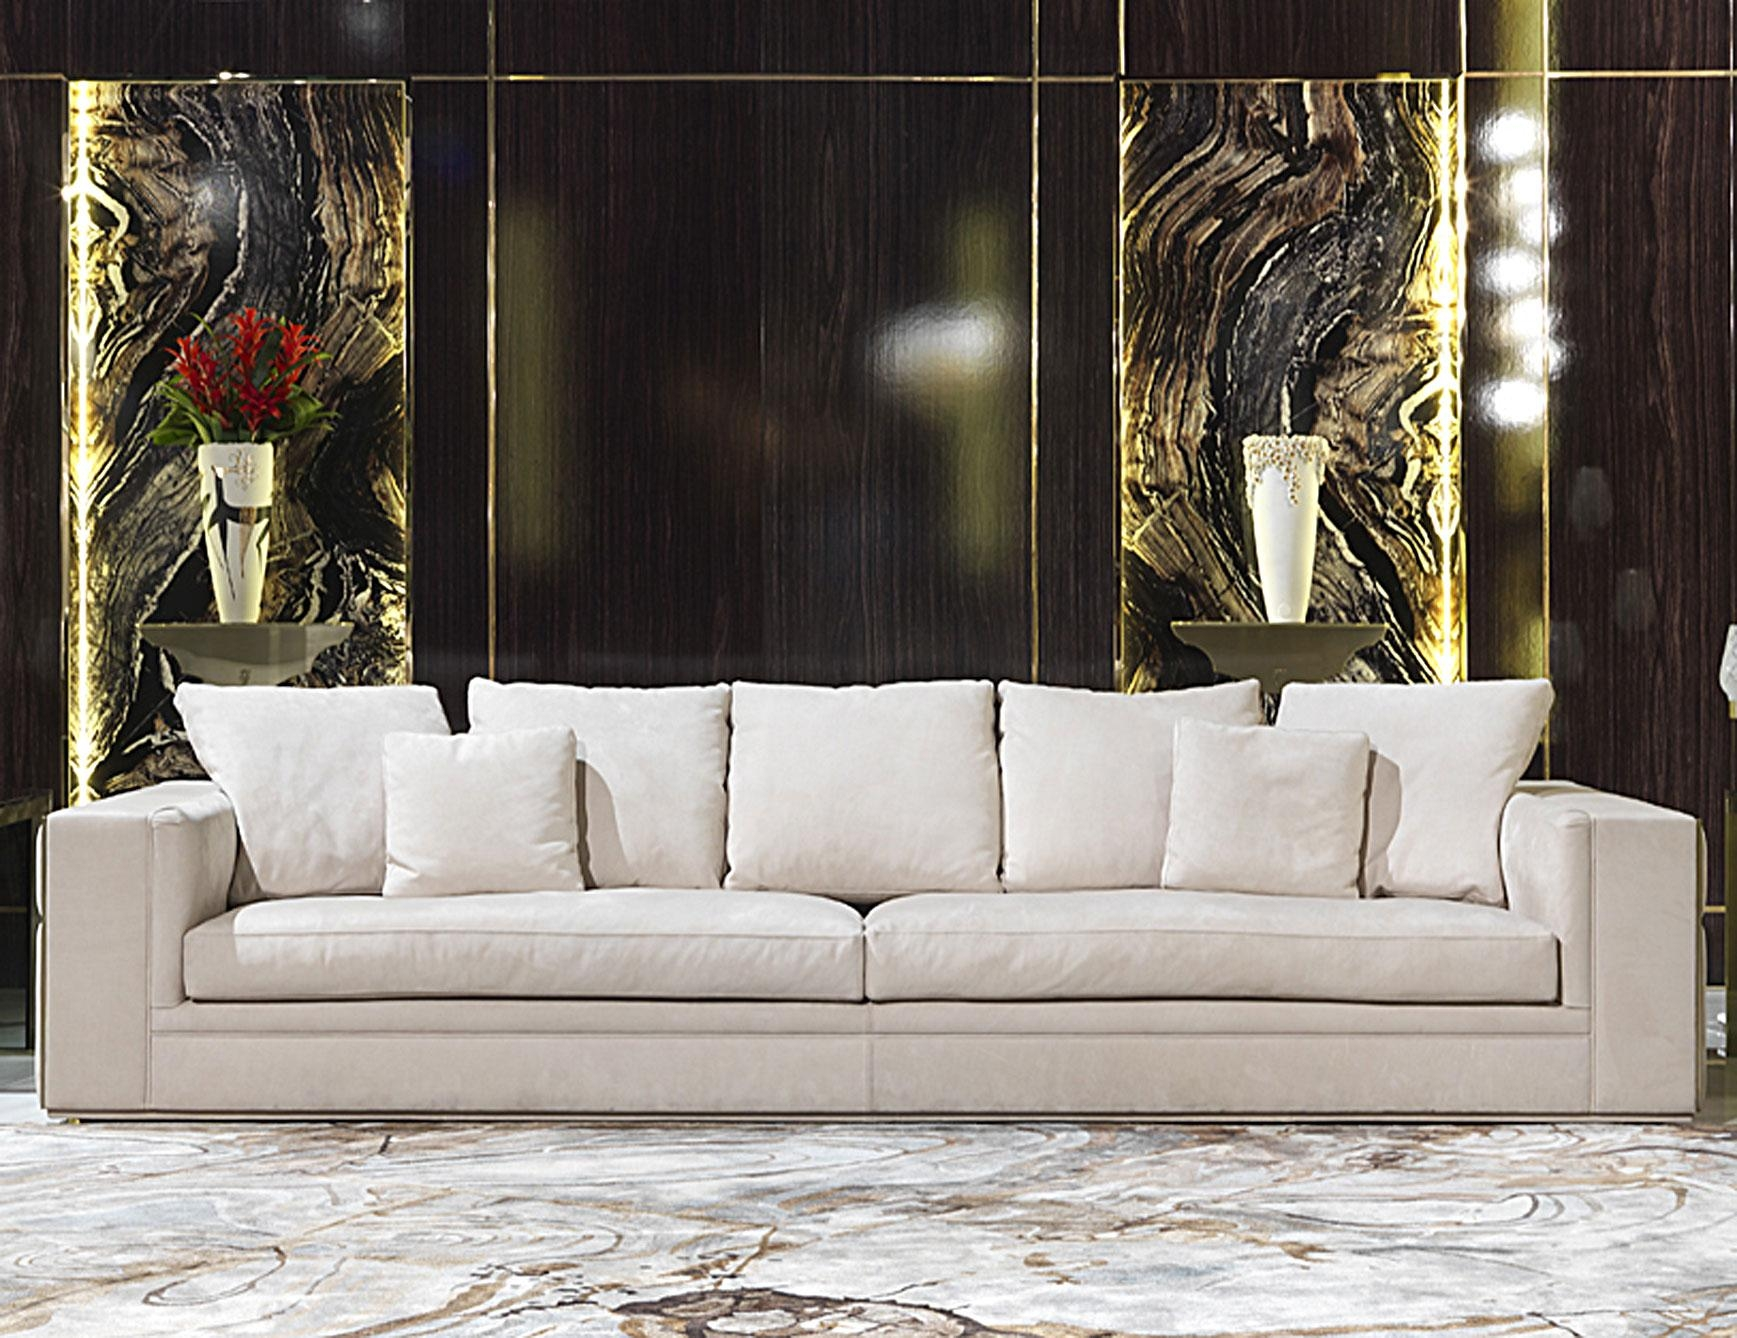 good quality sofa brands australia cushion repair los angeles high end sofas amazing